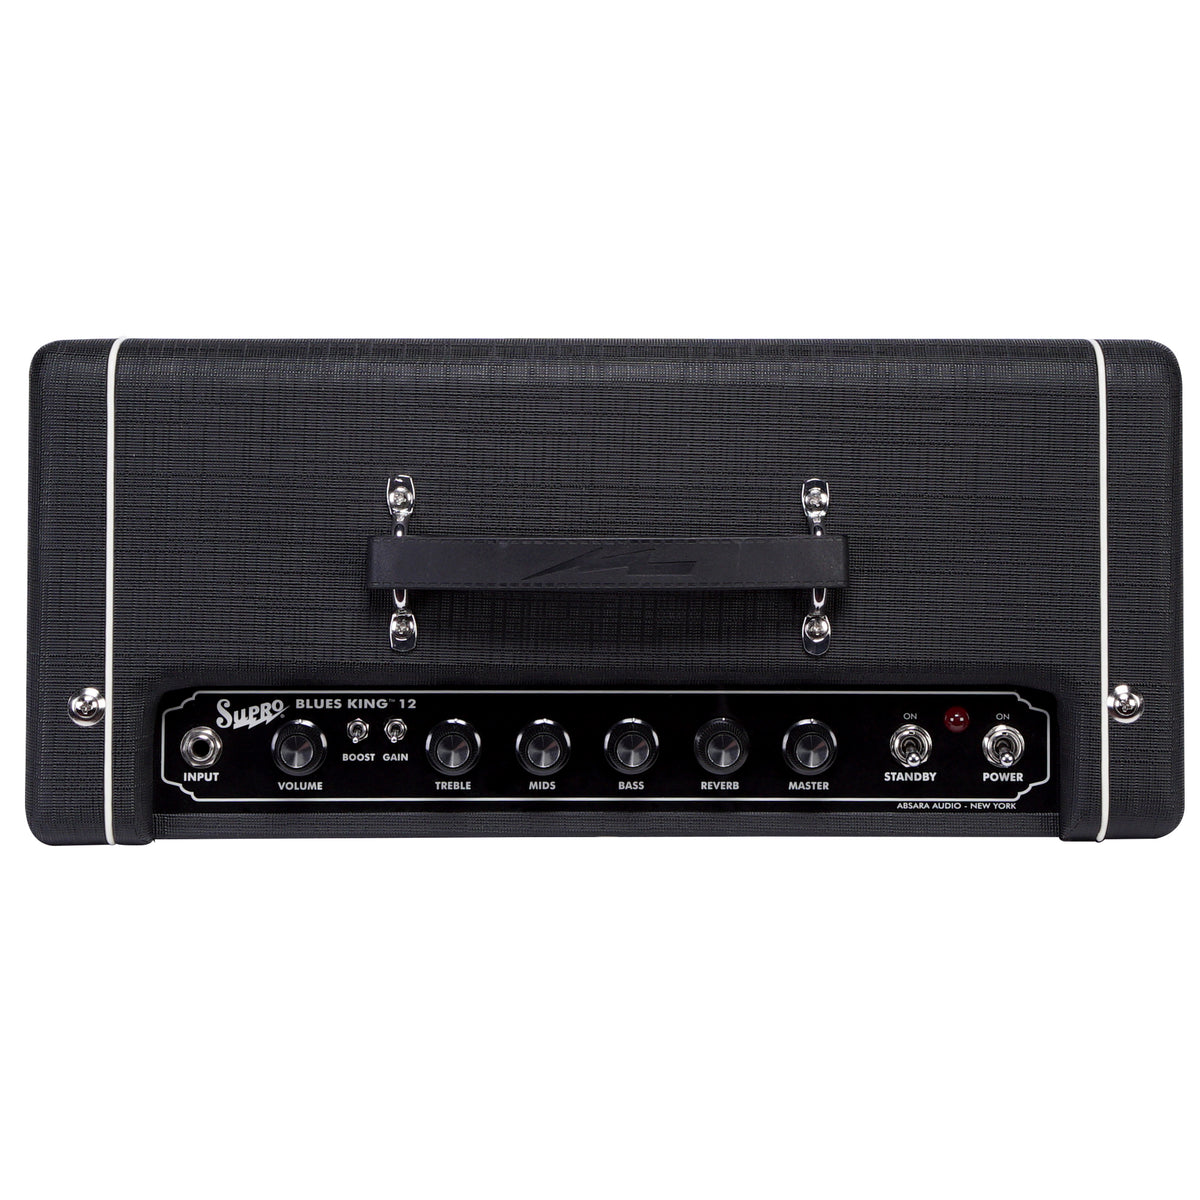 Supro 1812 Blues King 12 Combo